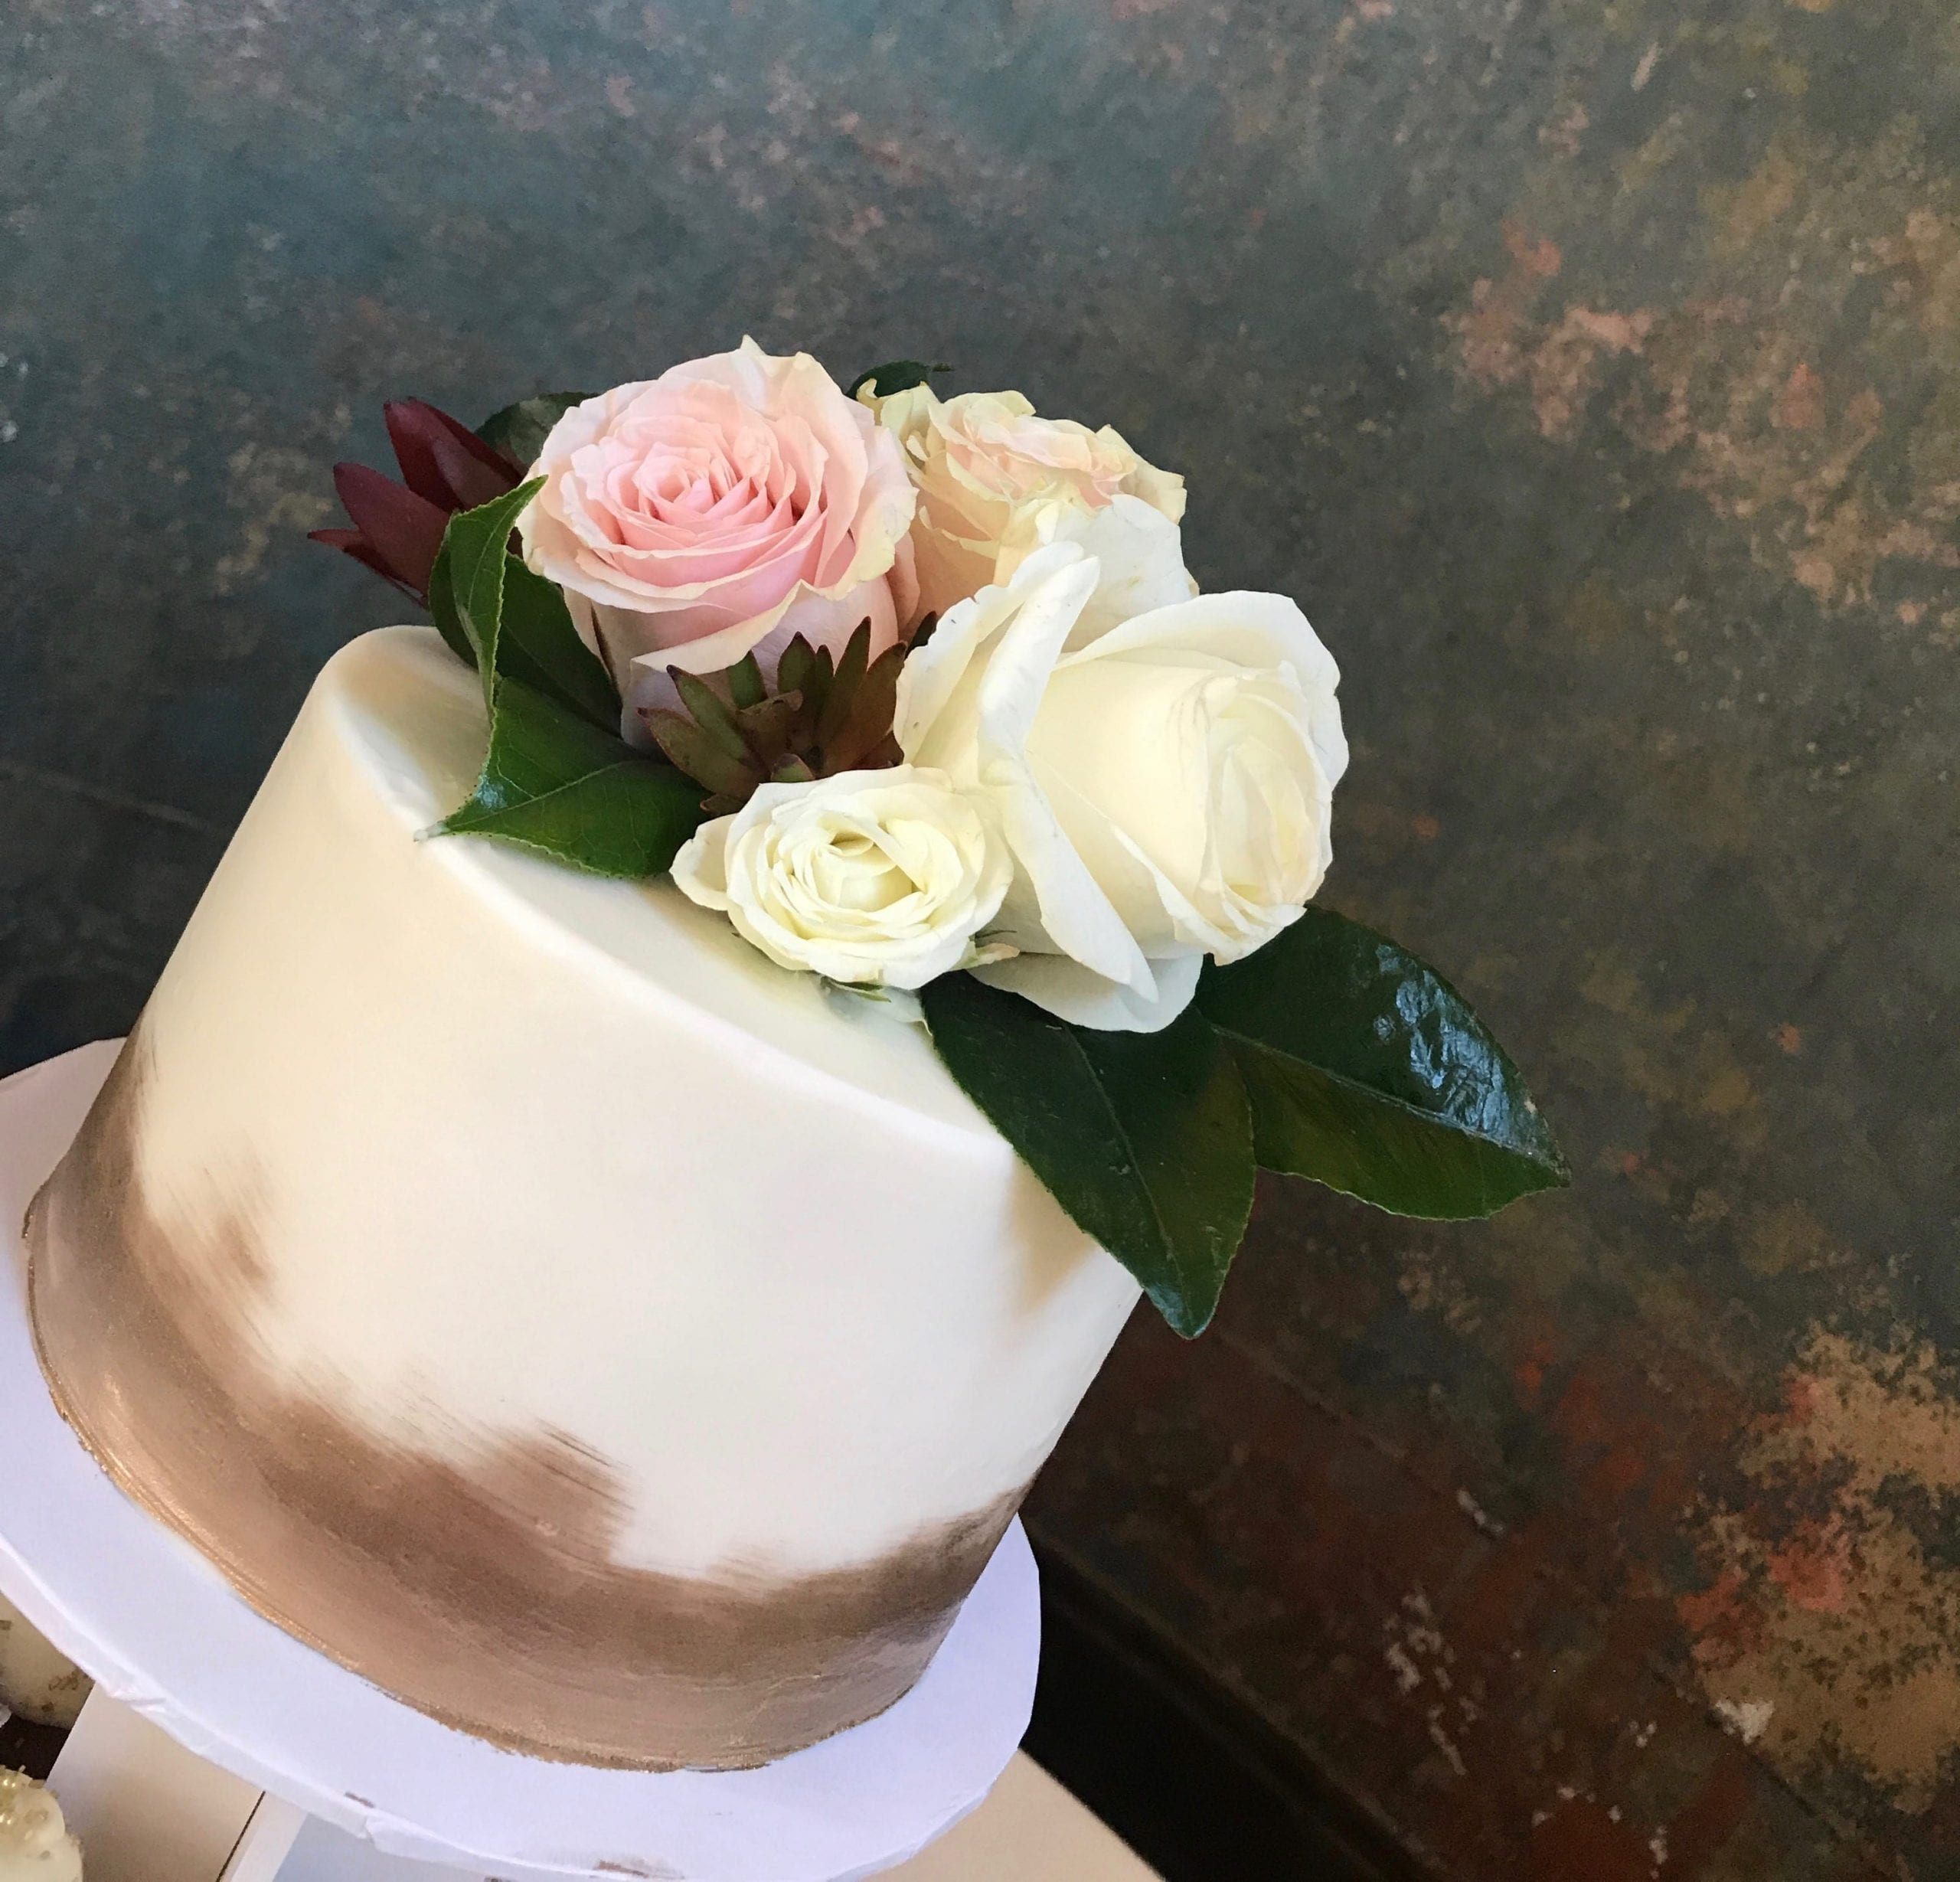 White Celebration Cake with Gold Accents and Fresh Roses | 3 Sweet Girls Cakery